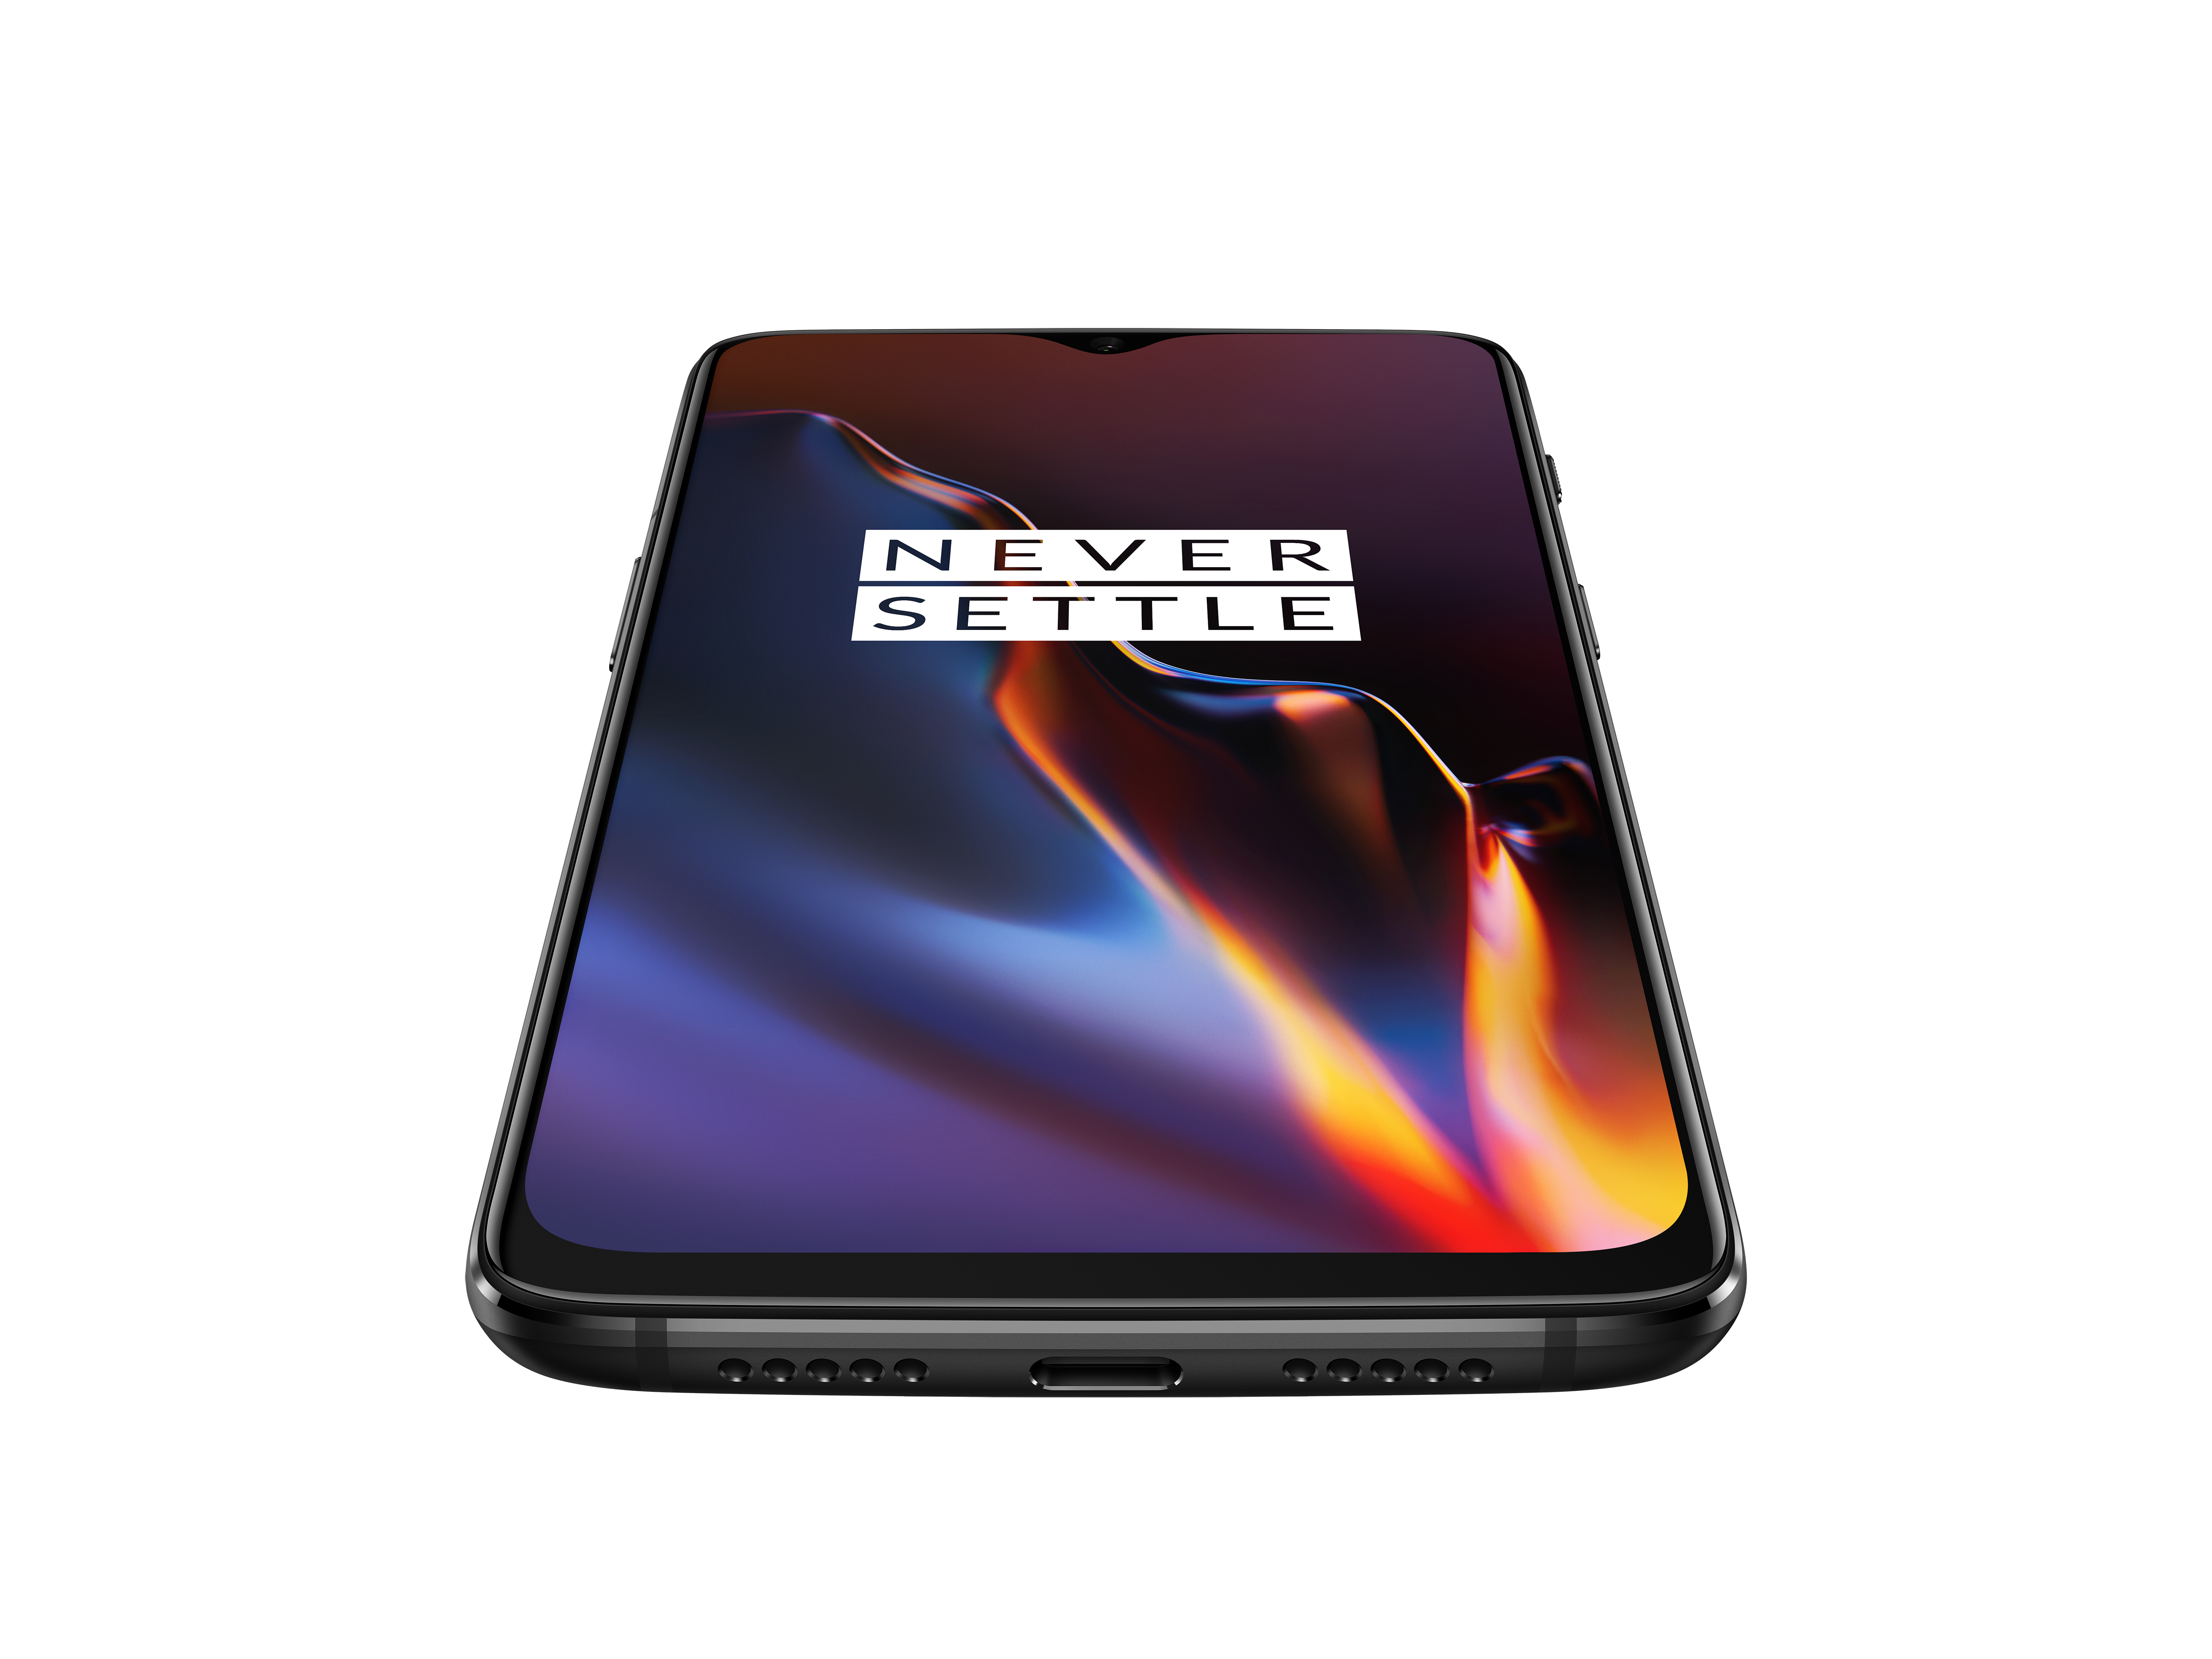 The OnePlus 6T is here and official, and it'll work on